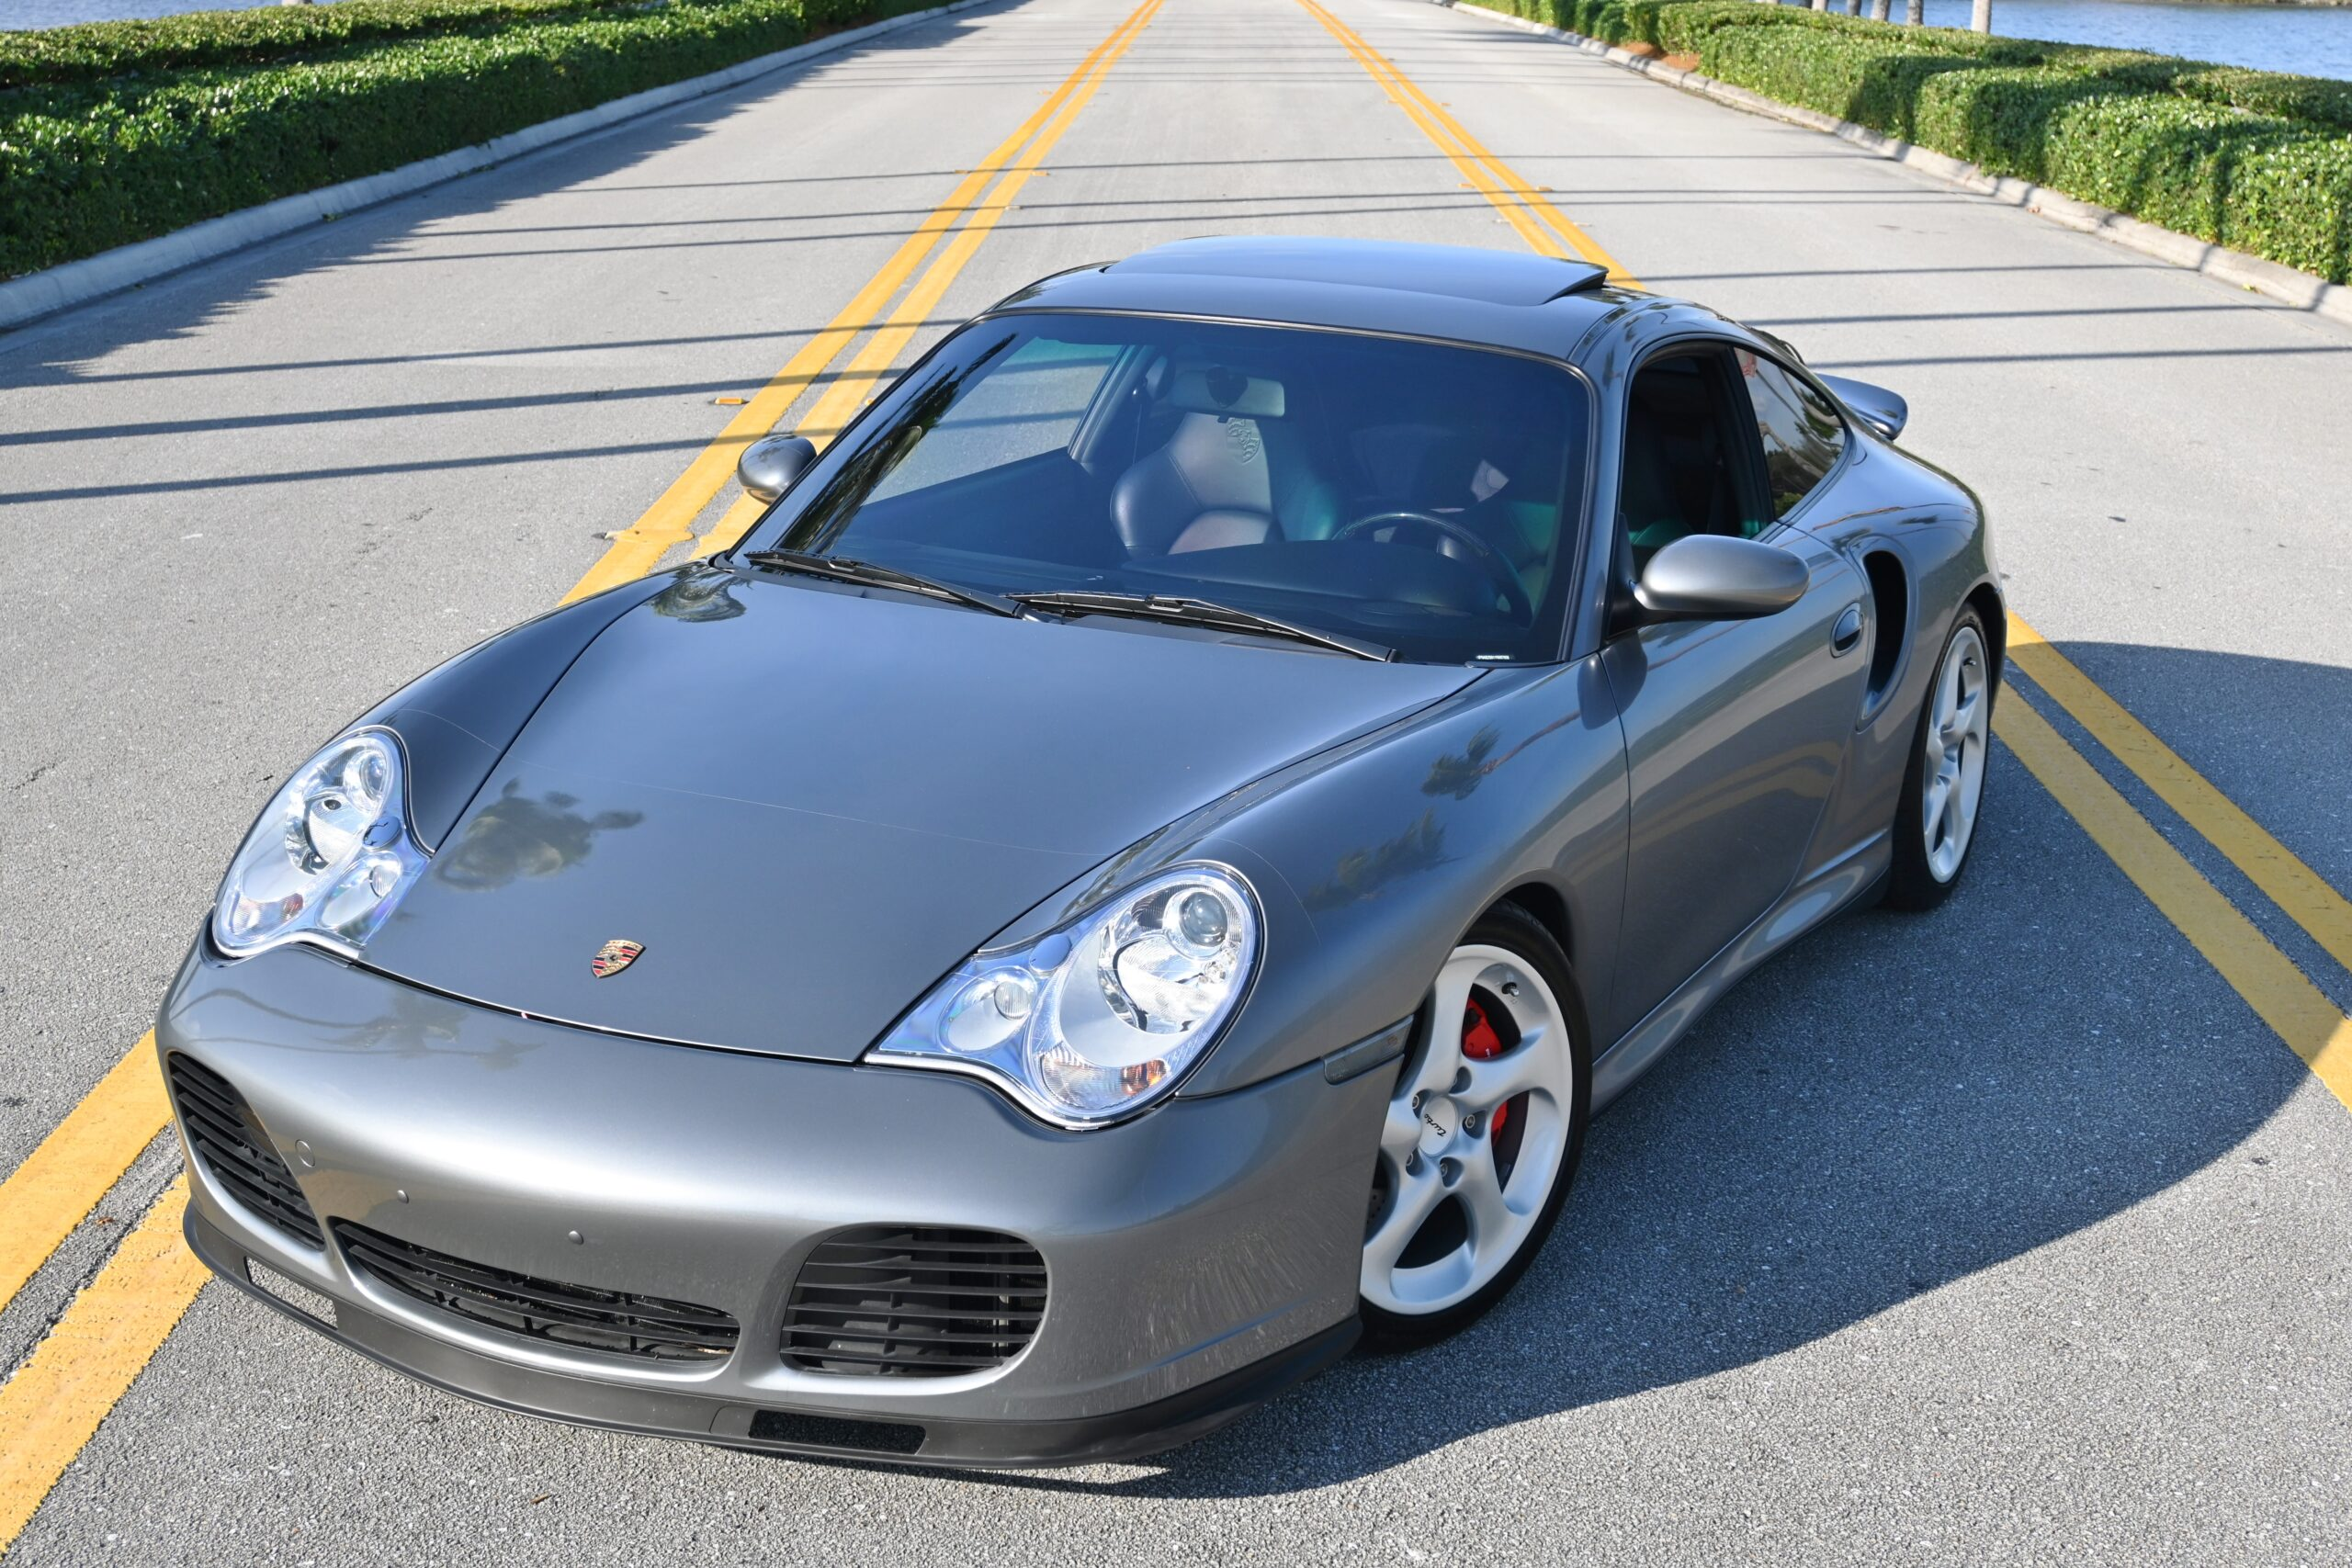 2001 Porsche 911 996 Turbo ONLY 11K MILES -Manual-Fully Loaded Factory Carbon-Sport Seats- Crazy Documented